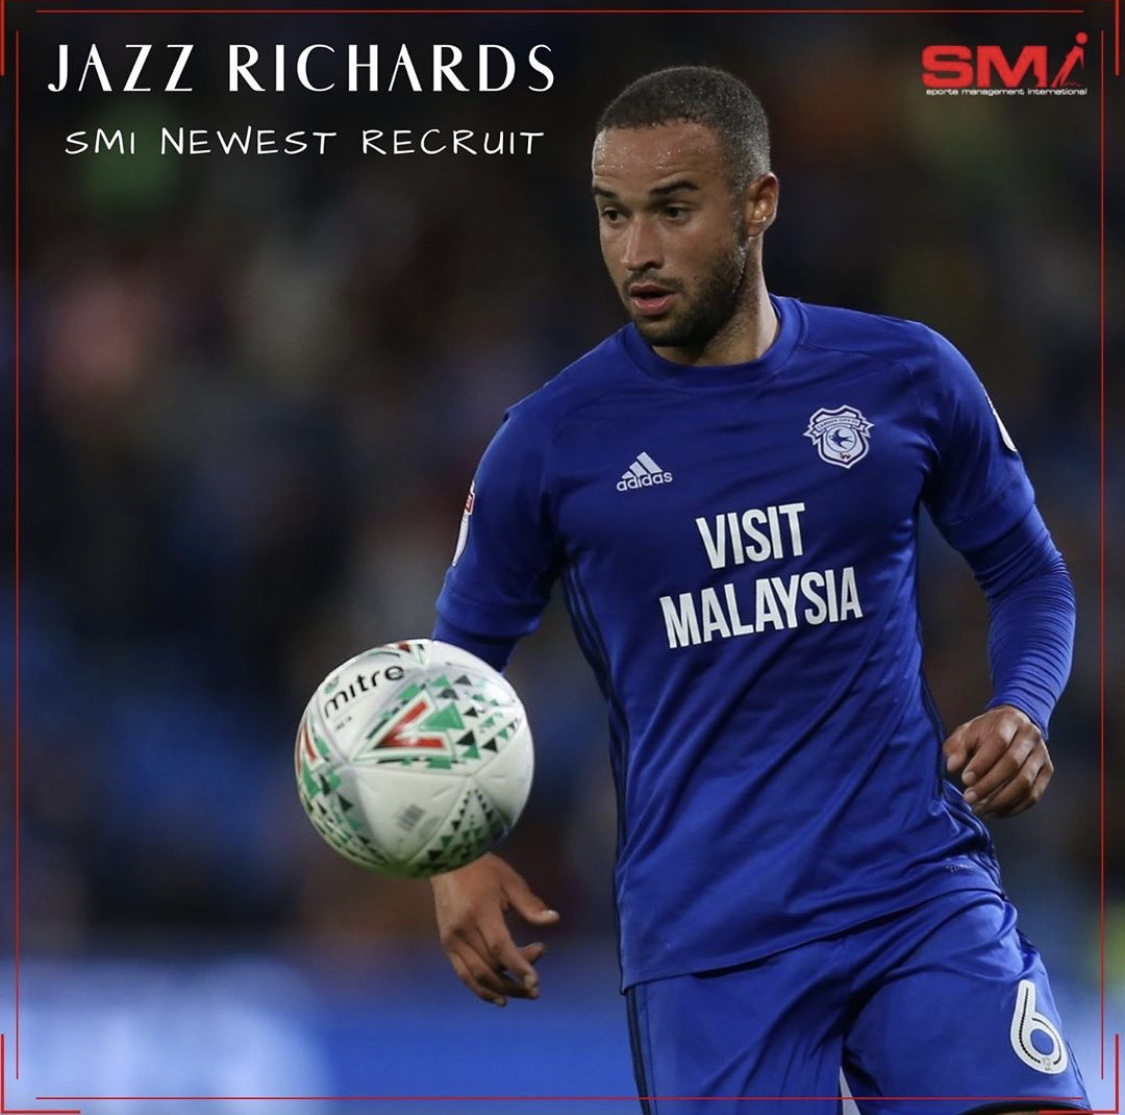 New Recruit Jazz Richards